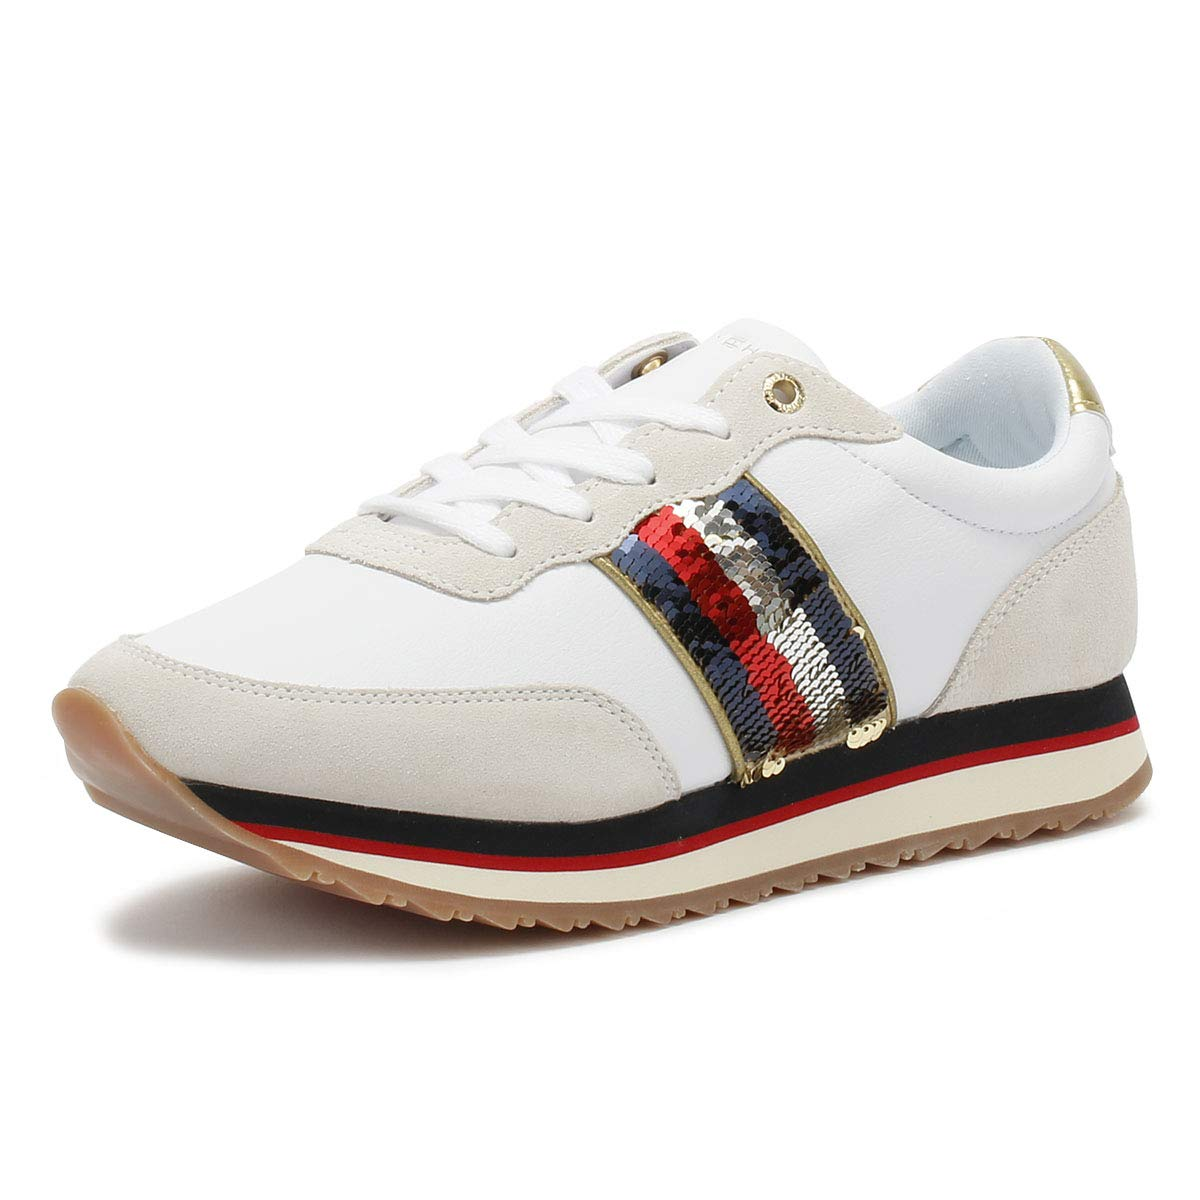 b03502f97 Amazon.com | Tommy Hilfiger Sequins Retro Womens Fashion Trainers in White  - 41 EU | Fashion Sneakers